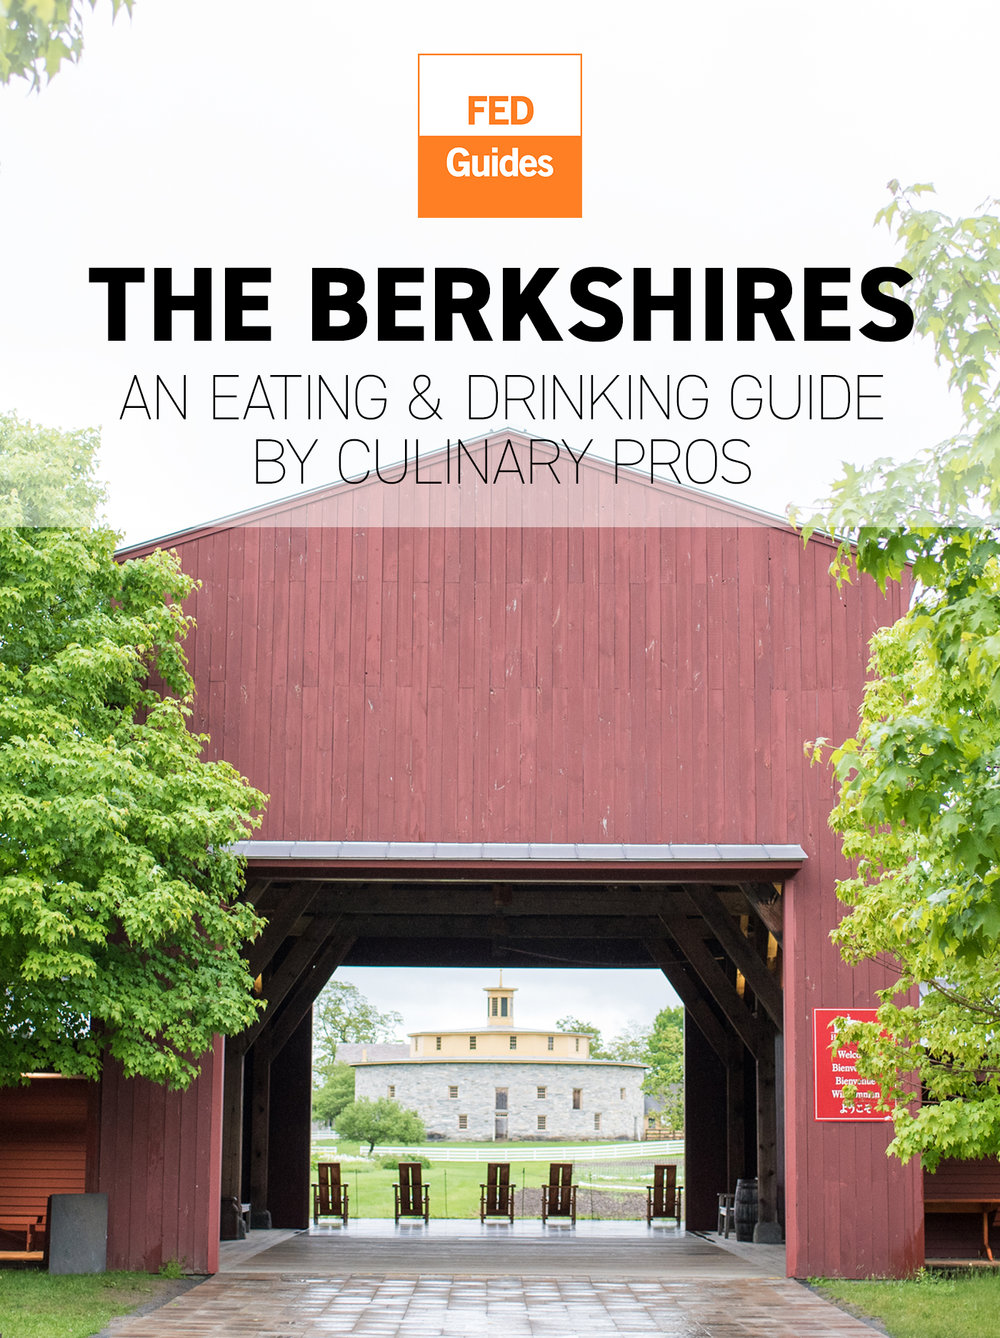 USA_MA_Berkshires_eBook_Apple_Cover_v4.5.jpg